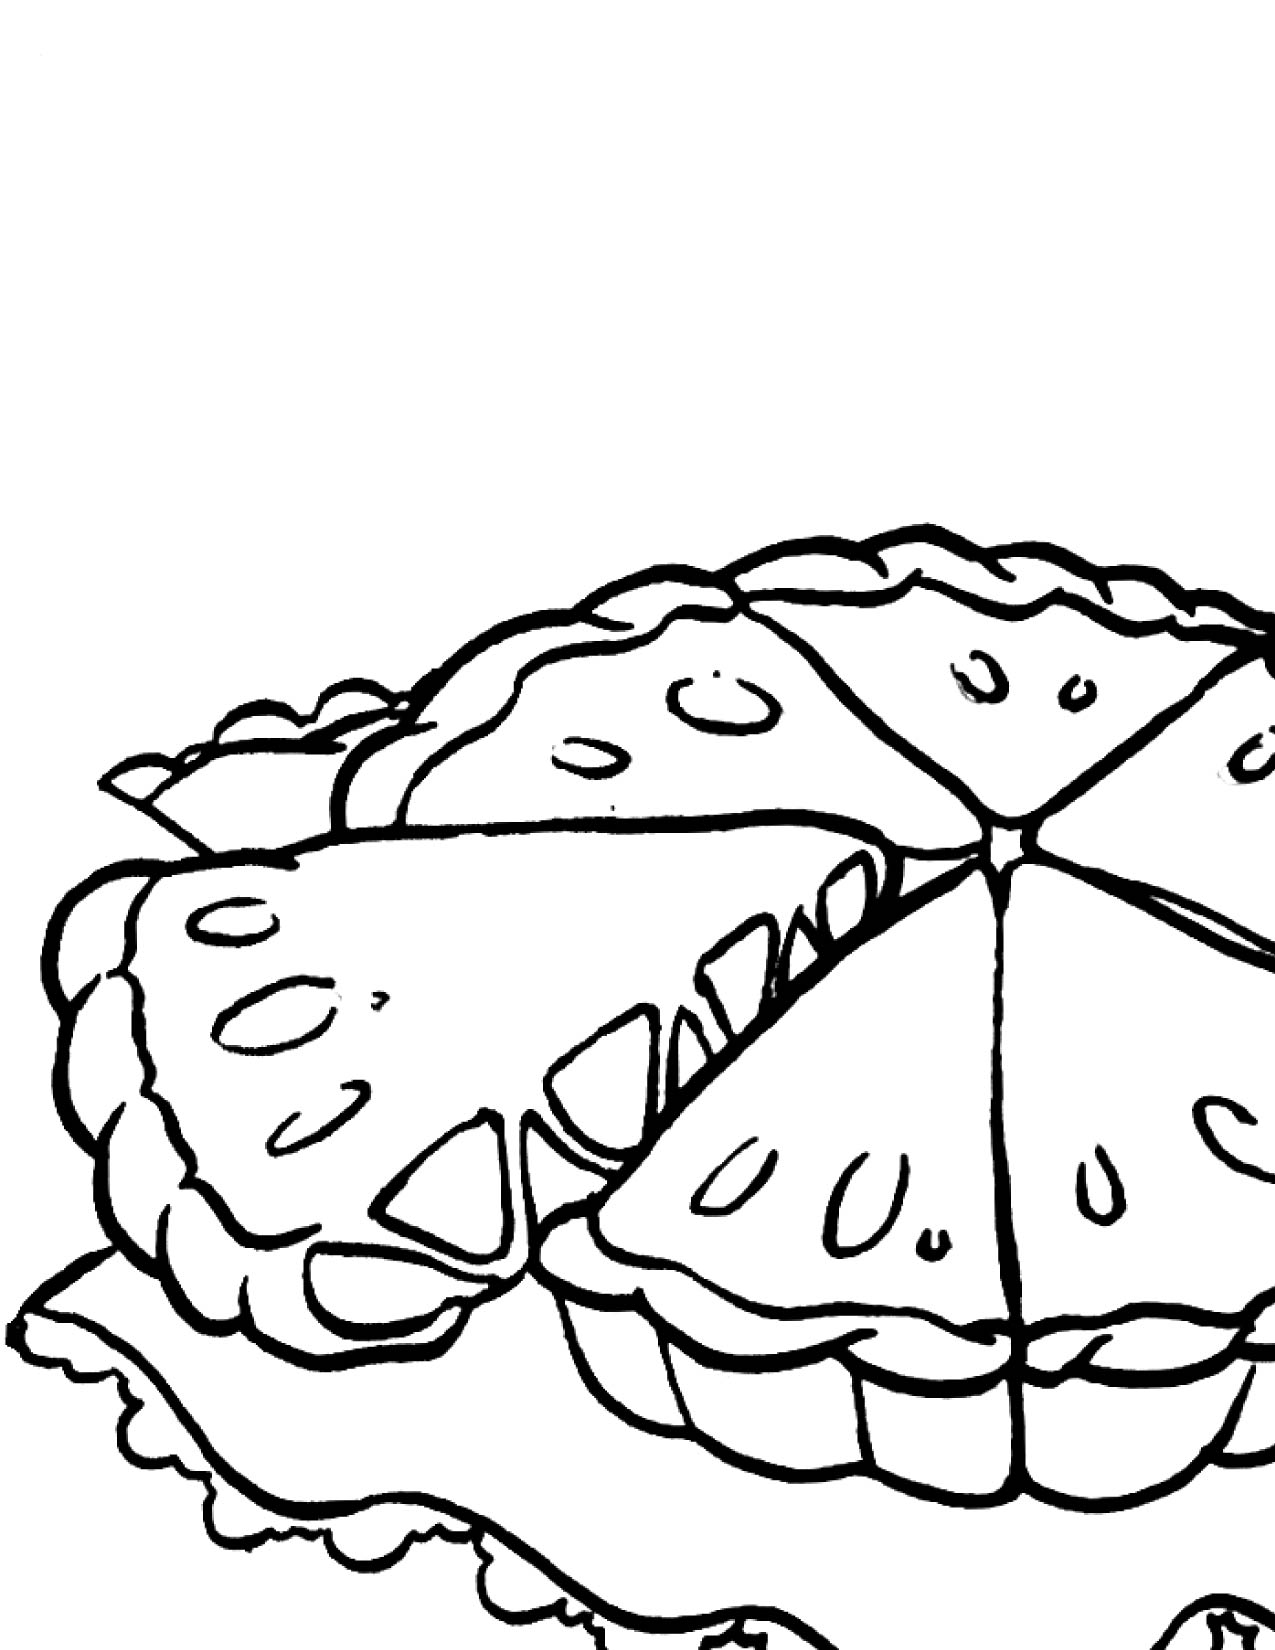 Coloring Pages Apple Pie : Apple pie coloring page handipoints